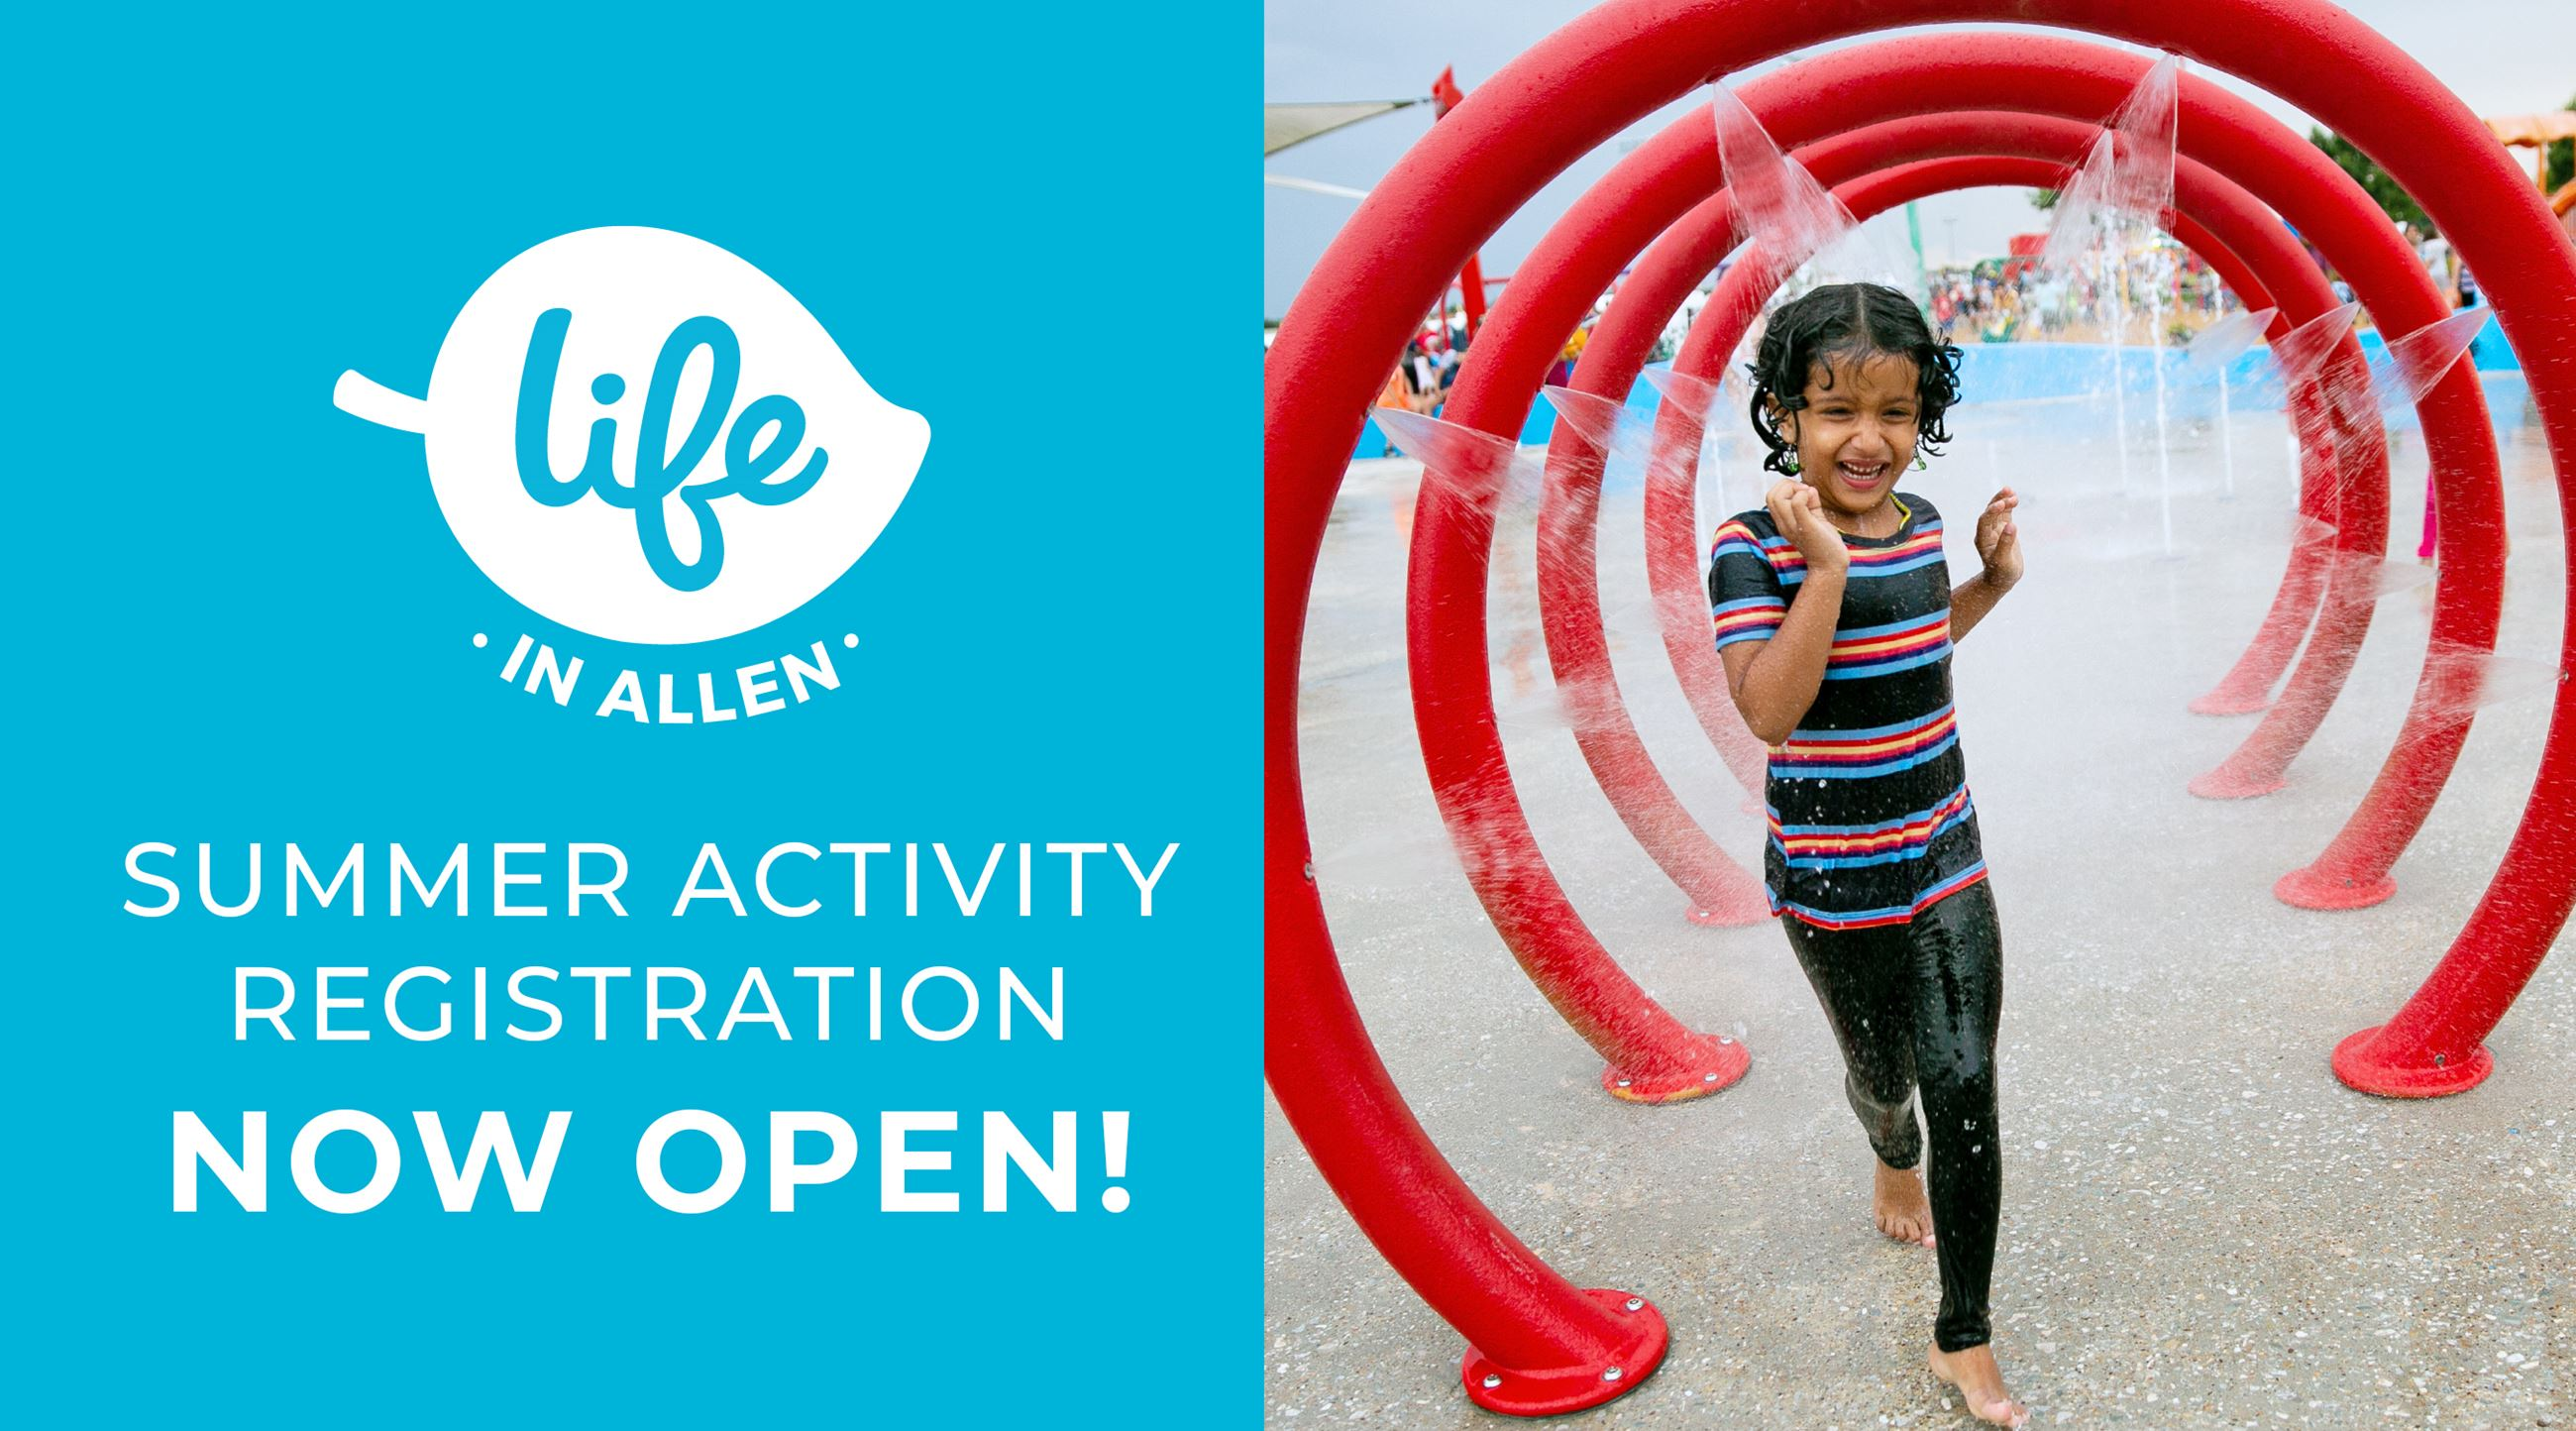 LIFE in Allen Summer Activity Registration Now Open!